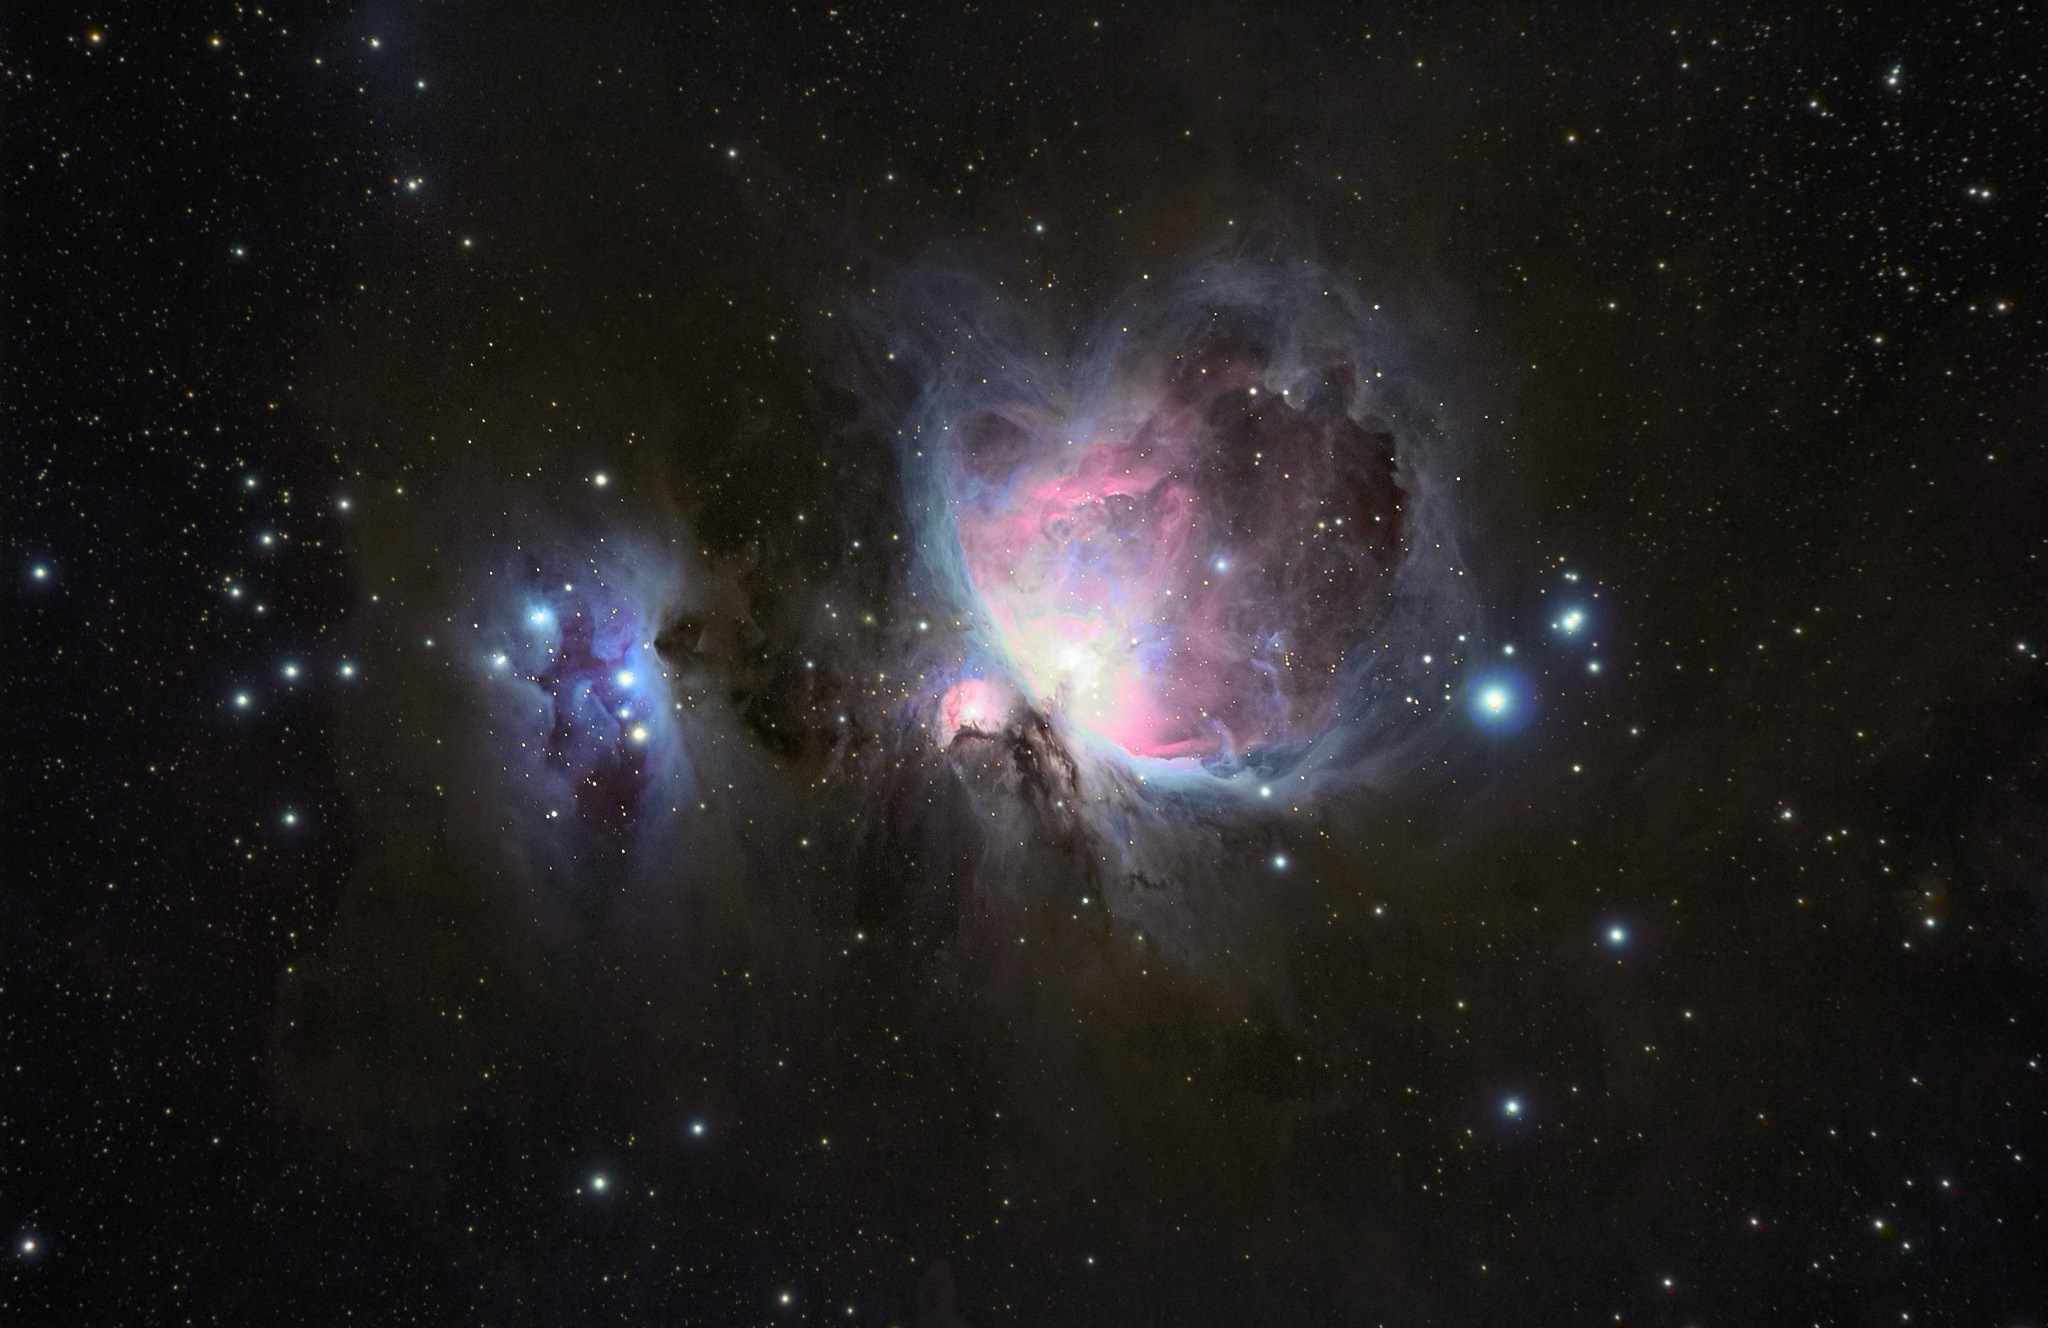 The Orion Nebula (M42) by Alessio Vaccaro